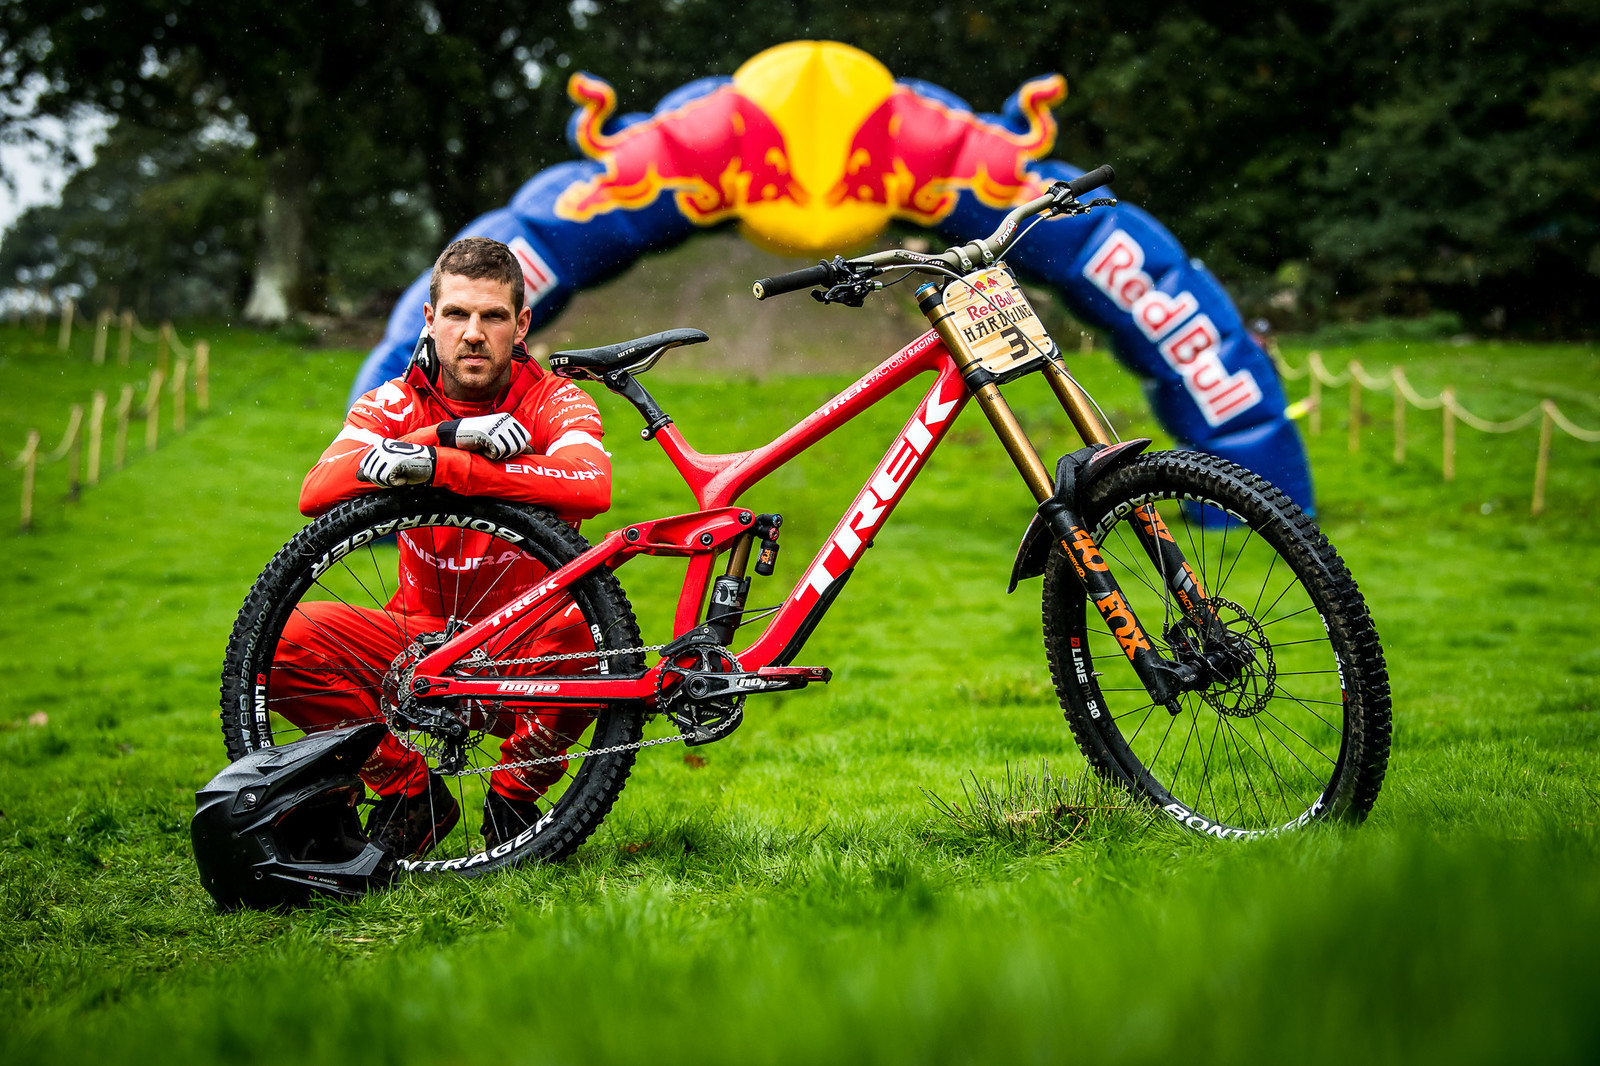 Dan Atherton and His Trek Session - Red Bull Hardline 2018 Riders and Bikes - Mountain Biking Pictures - Vital MTB